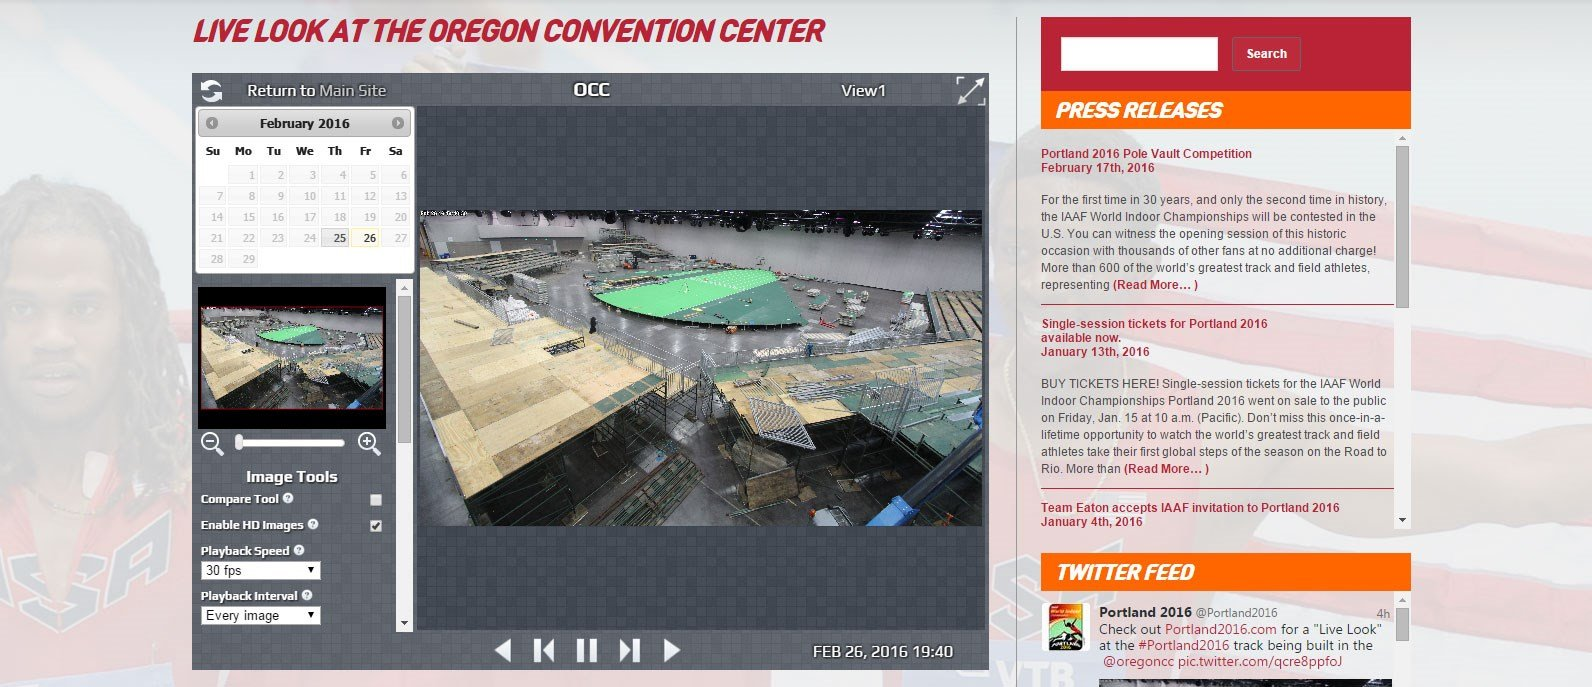 Running fans can check out a webcam feed inside the Oregon Convention Center to see the construction of the stadium and track being used for the U.S. Indoor Track and Field Championships. (KPTV)